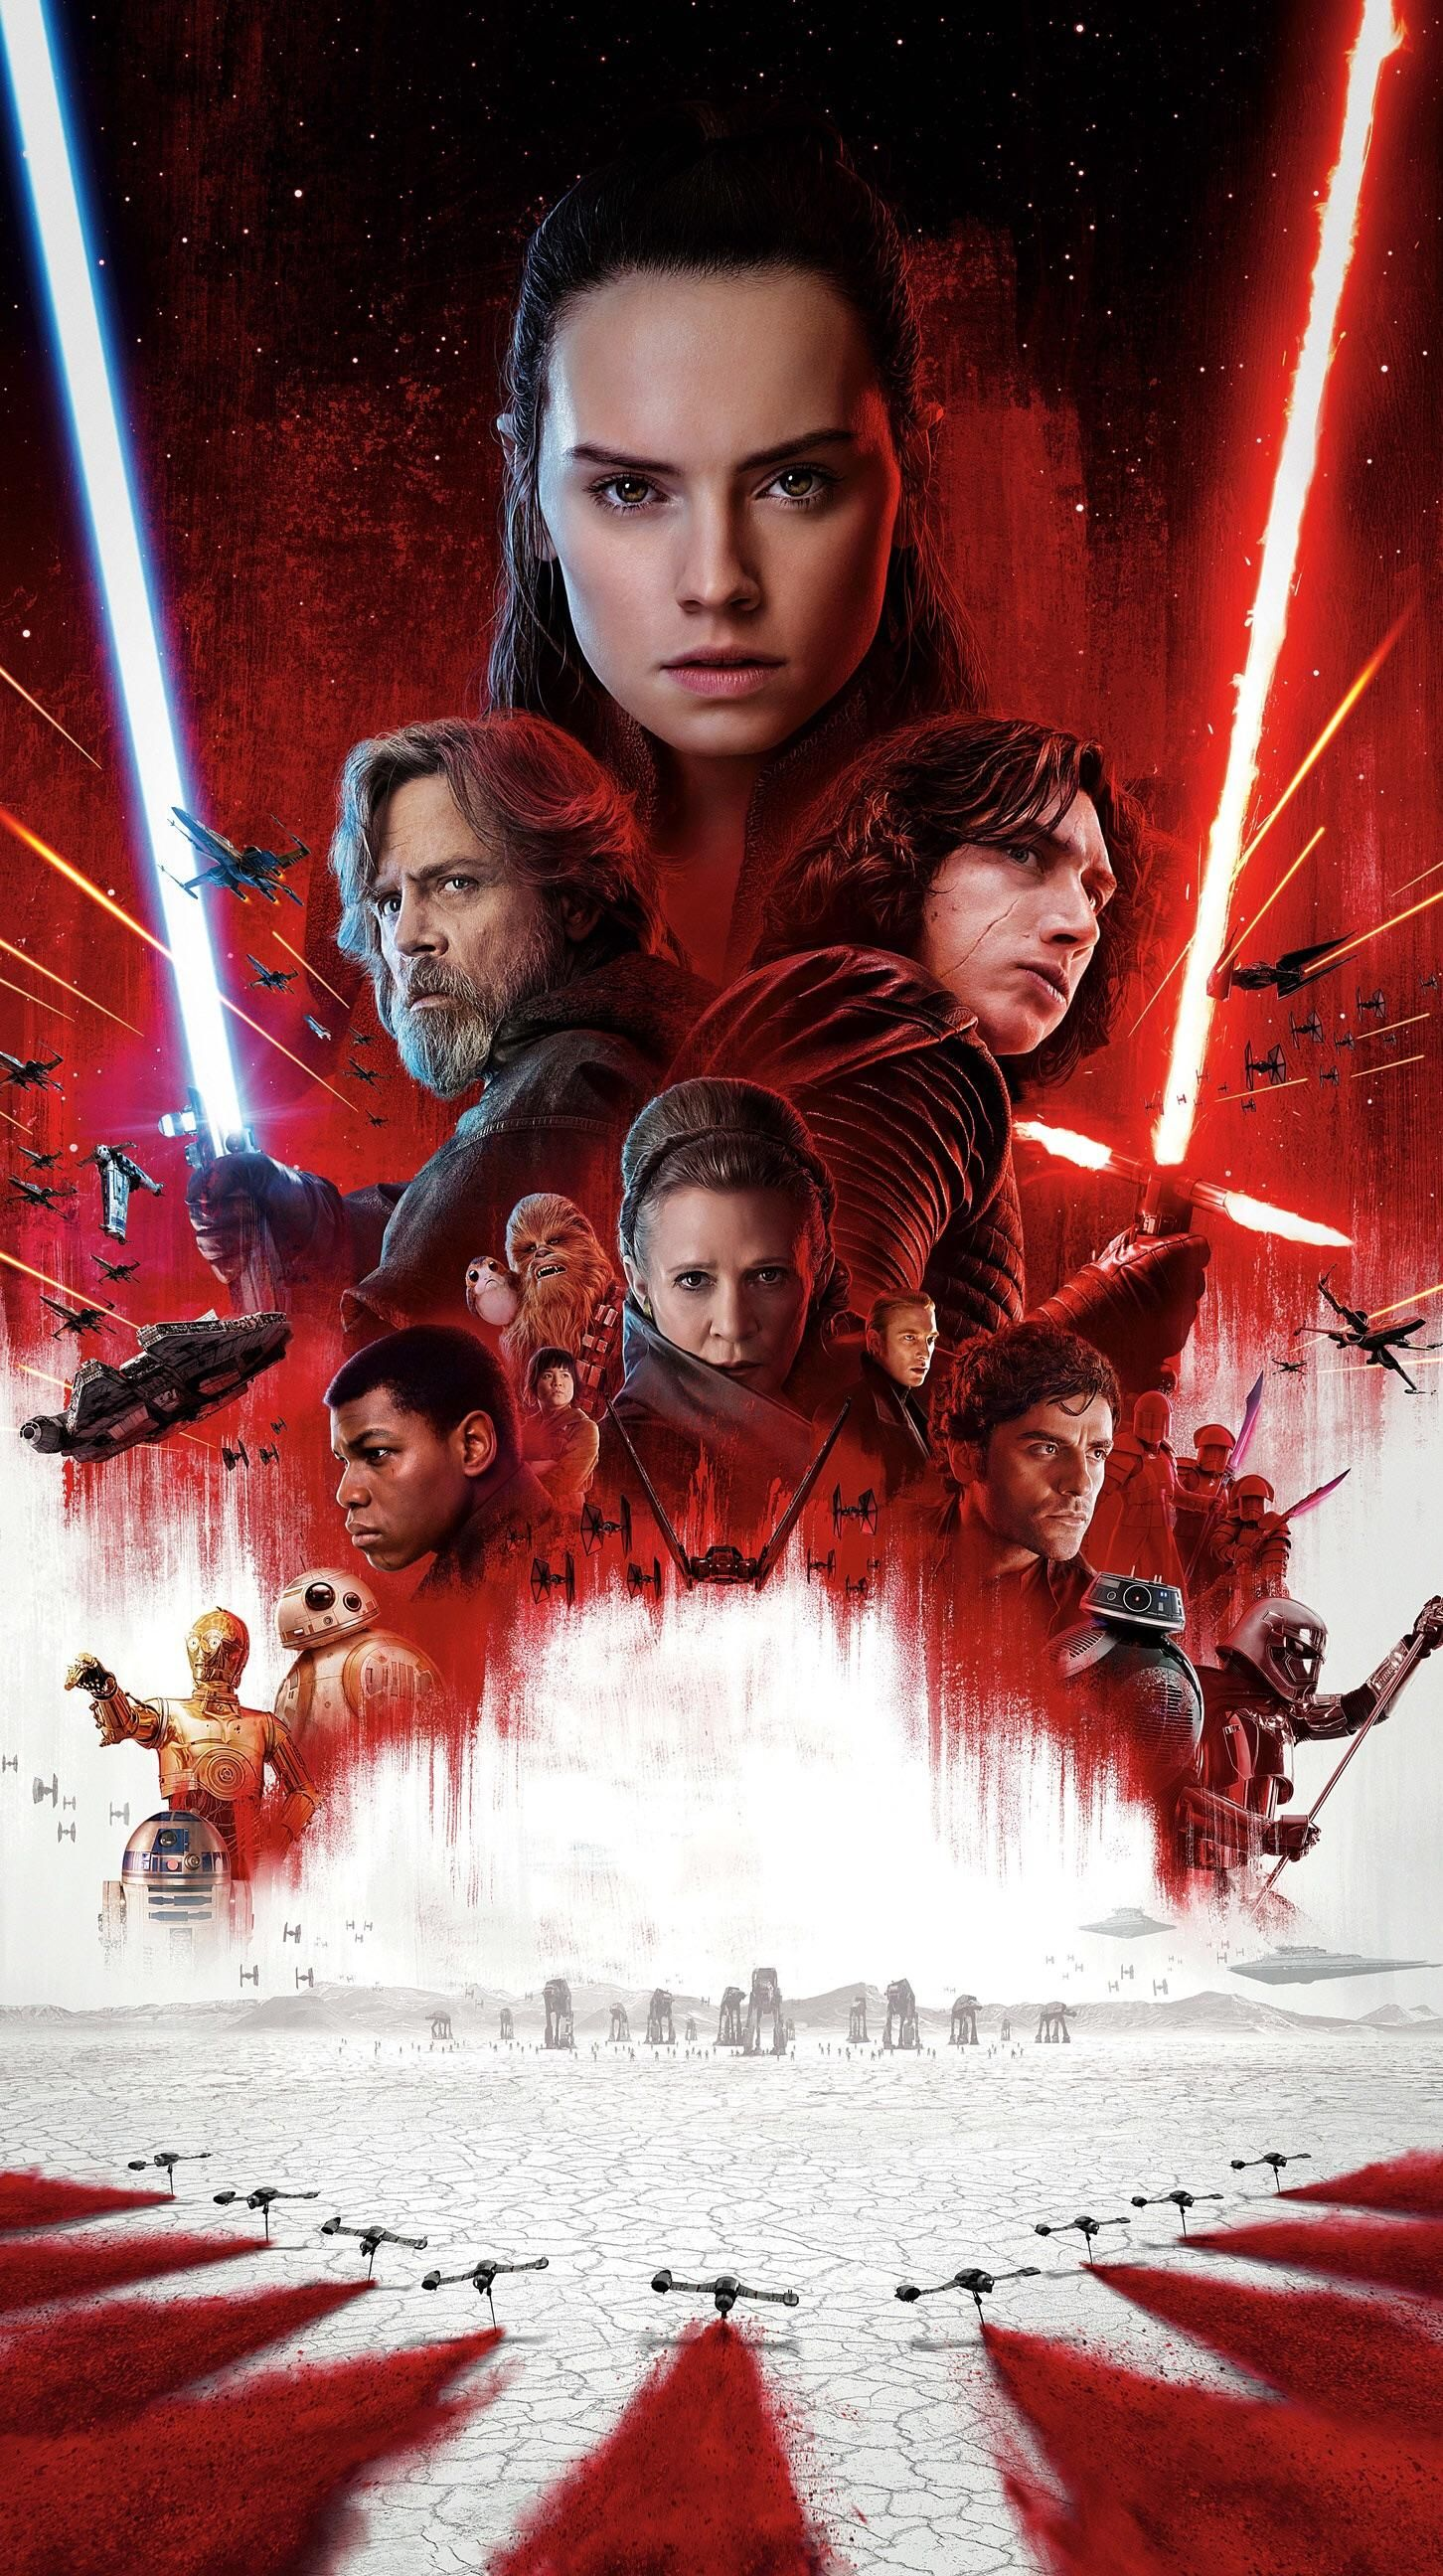 Star Wars Episode 8 Streaming Vf : episode, streaming, (i.redd.it), Submitted, Omegaferrari, /r/iWallpaper, Comments, Original, Modern, -Ultimate…, Watch,, Poster,, Movie